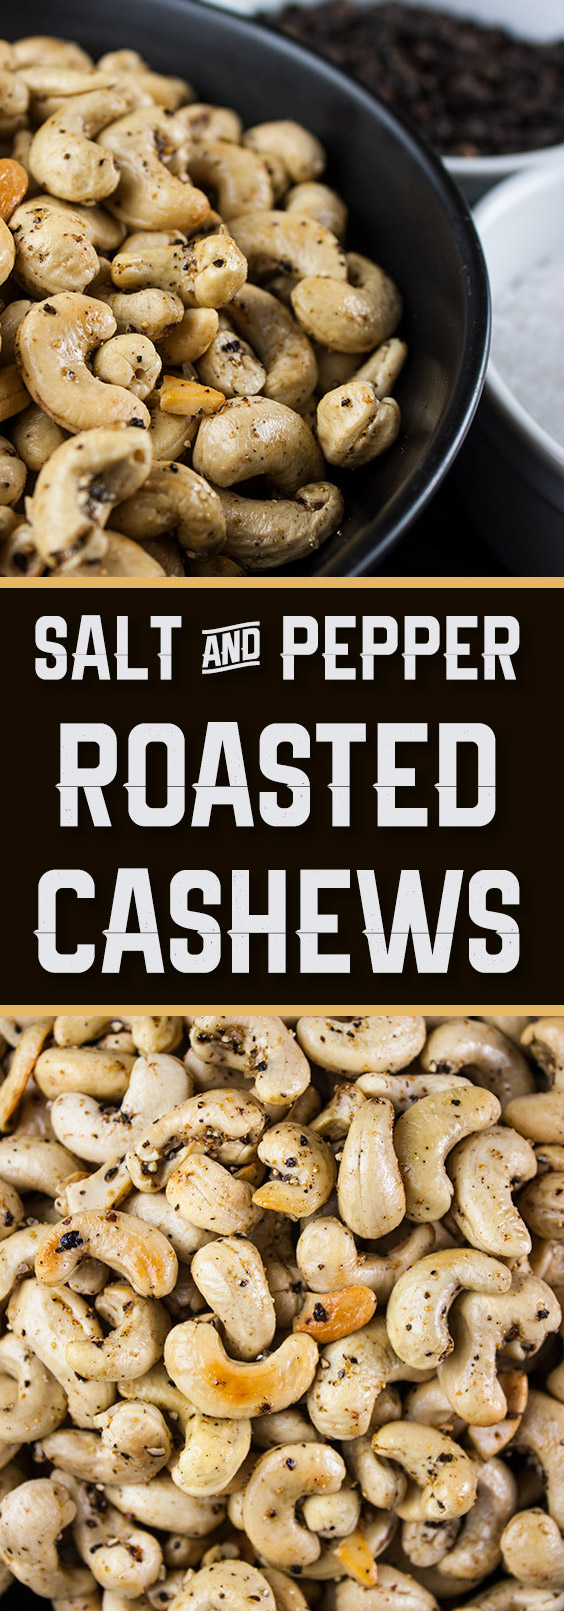 Salt and Pepper Roasted Cashews - Tantalize your taste buds with these spicy roasted cashews! So simple you will kick yourself for not trying this recipe sooner.